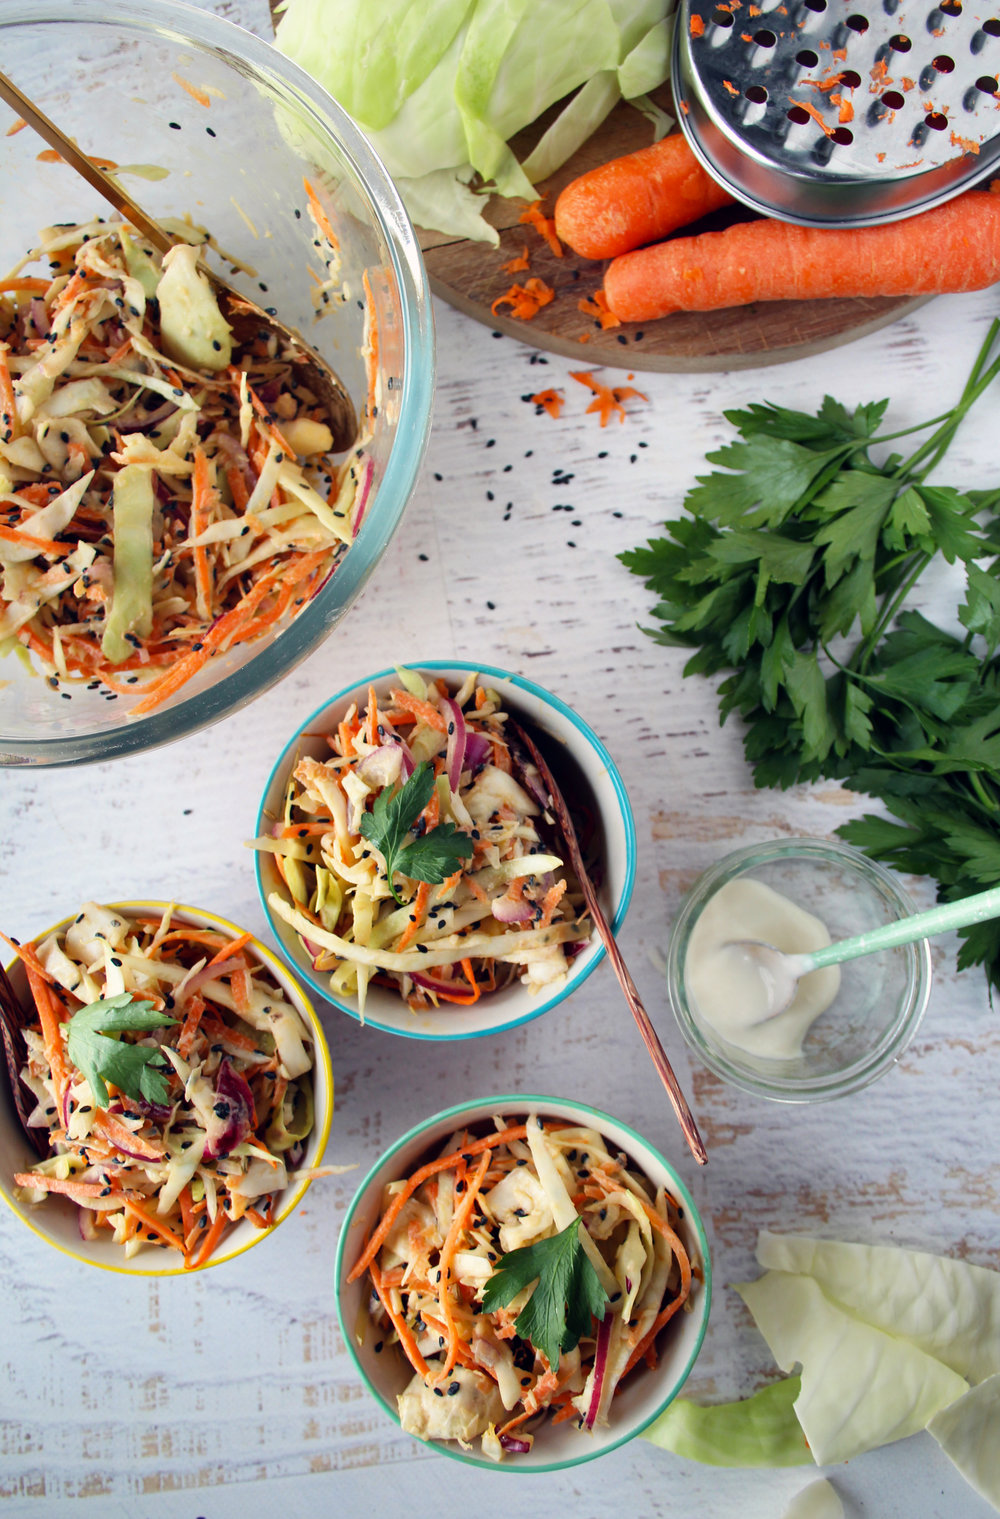 Asia rainbow slaw recipe | The Flourishing Pantry